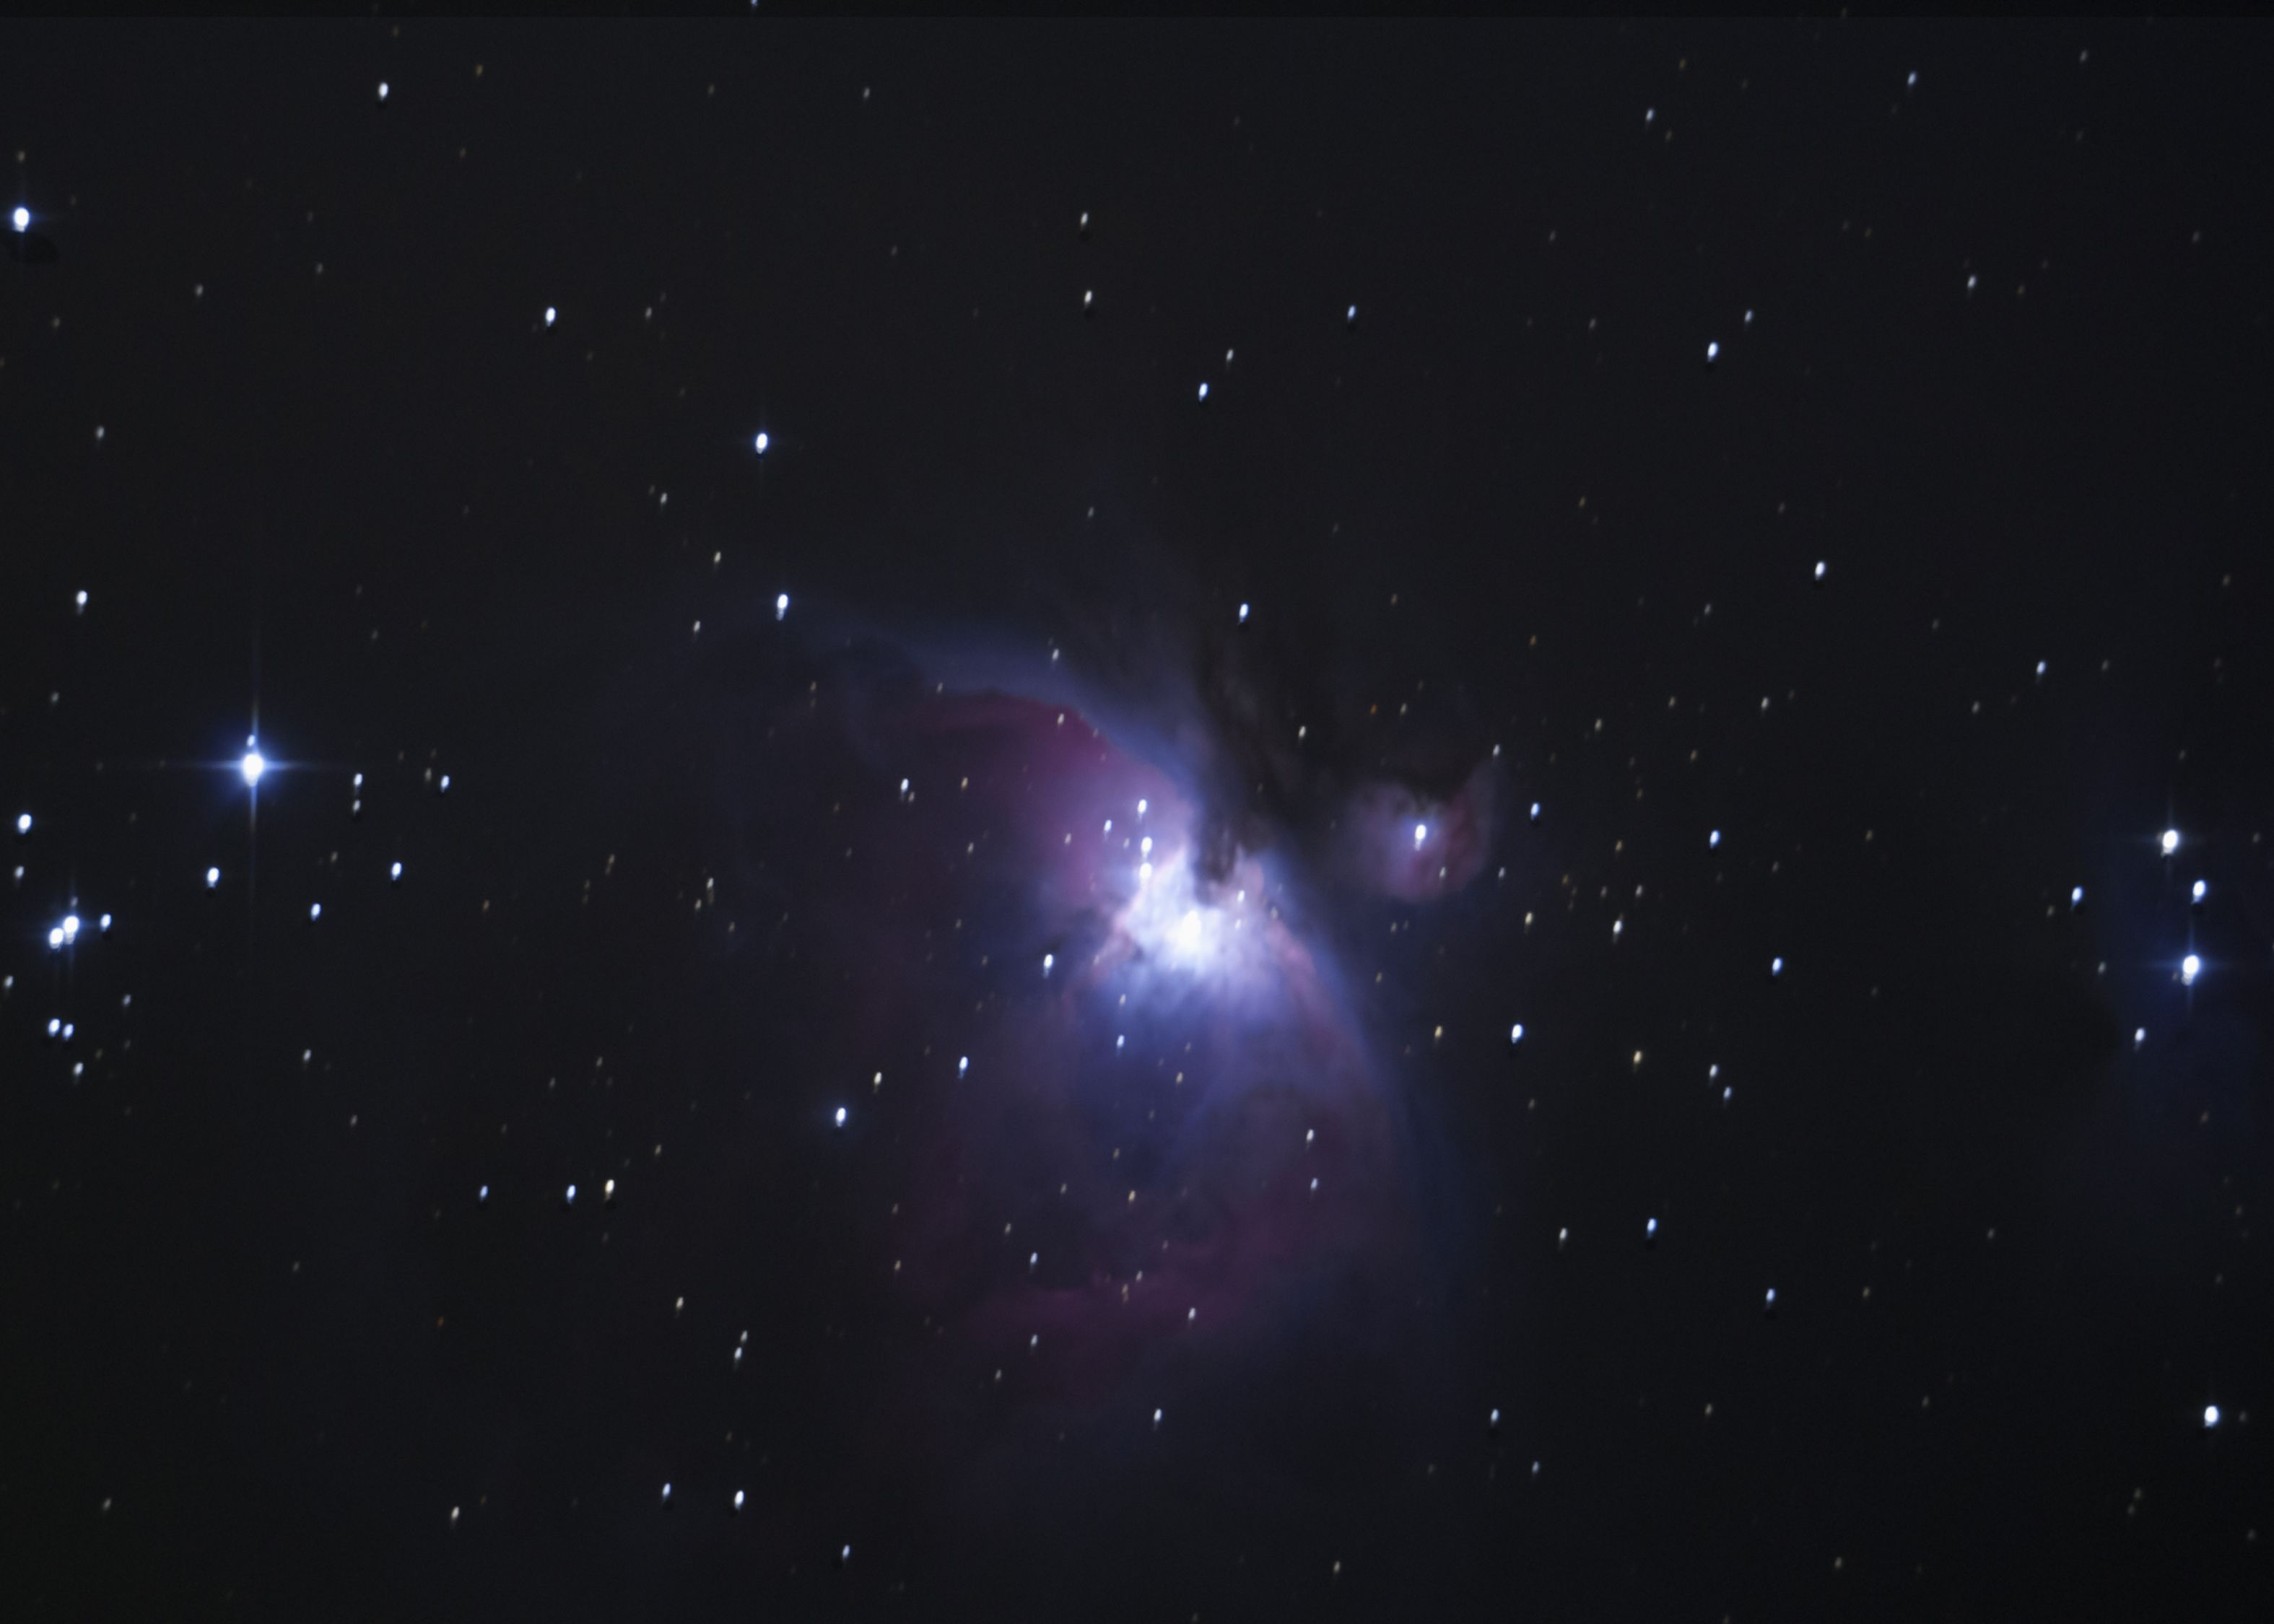 Orion Nebula (M42) with Trapezium and M43